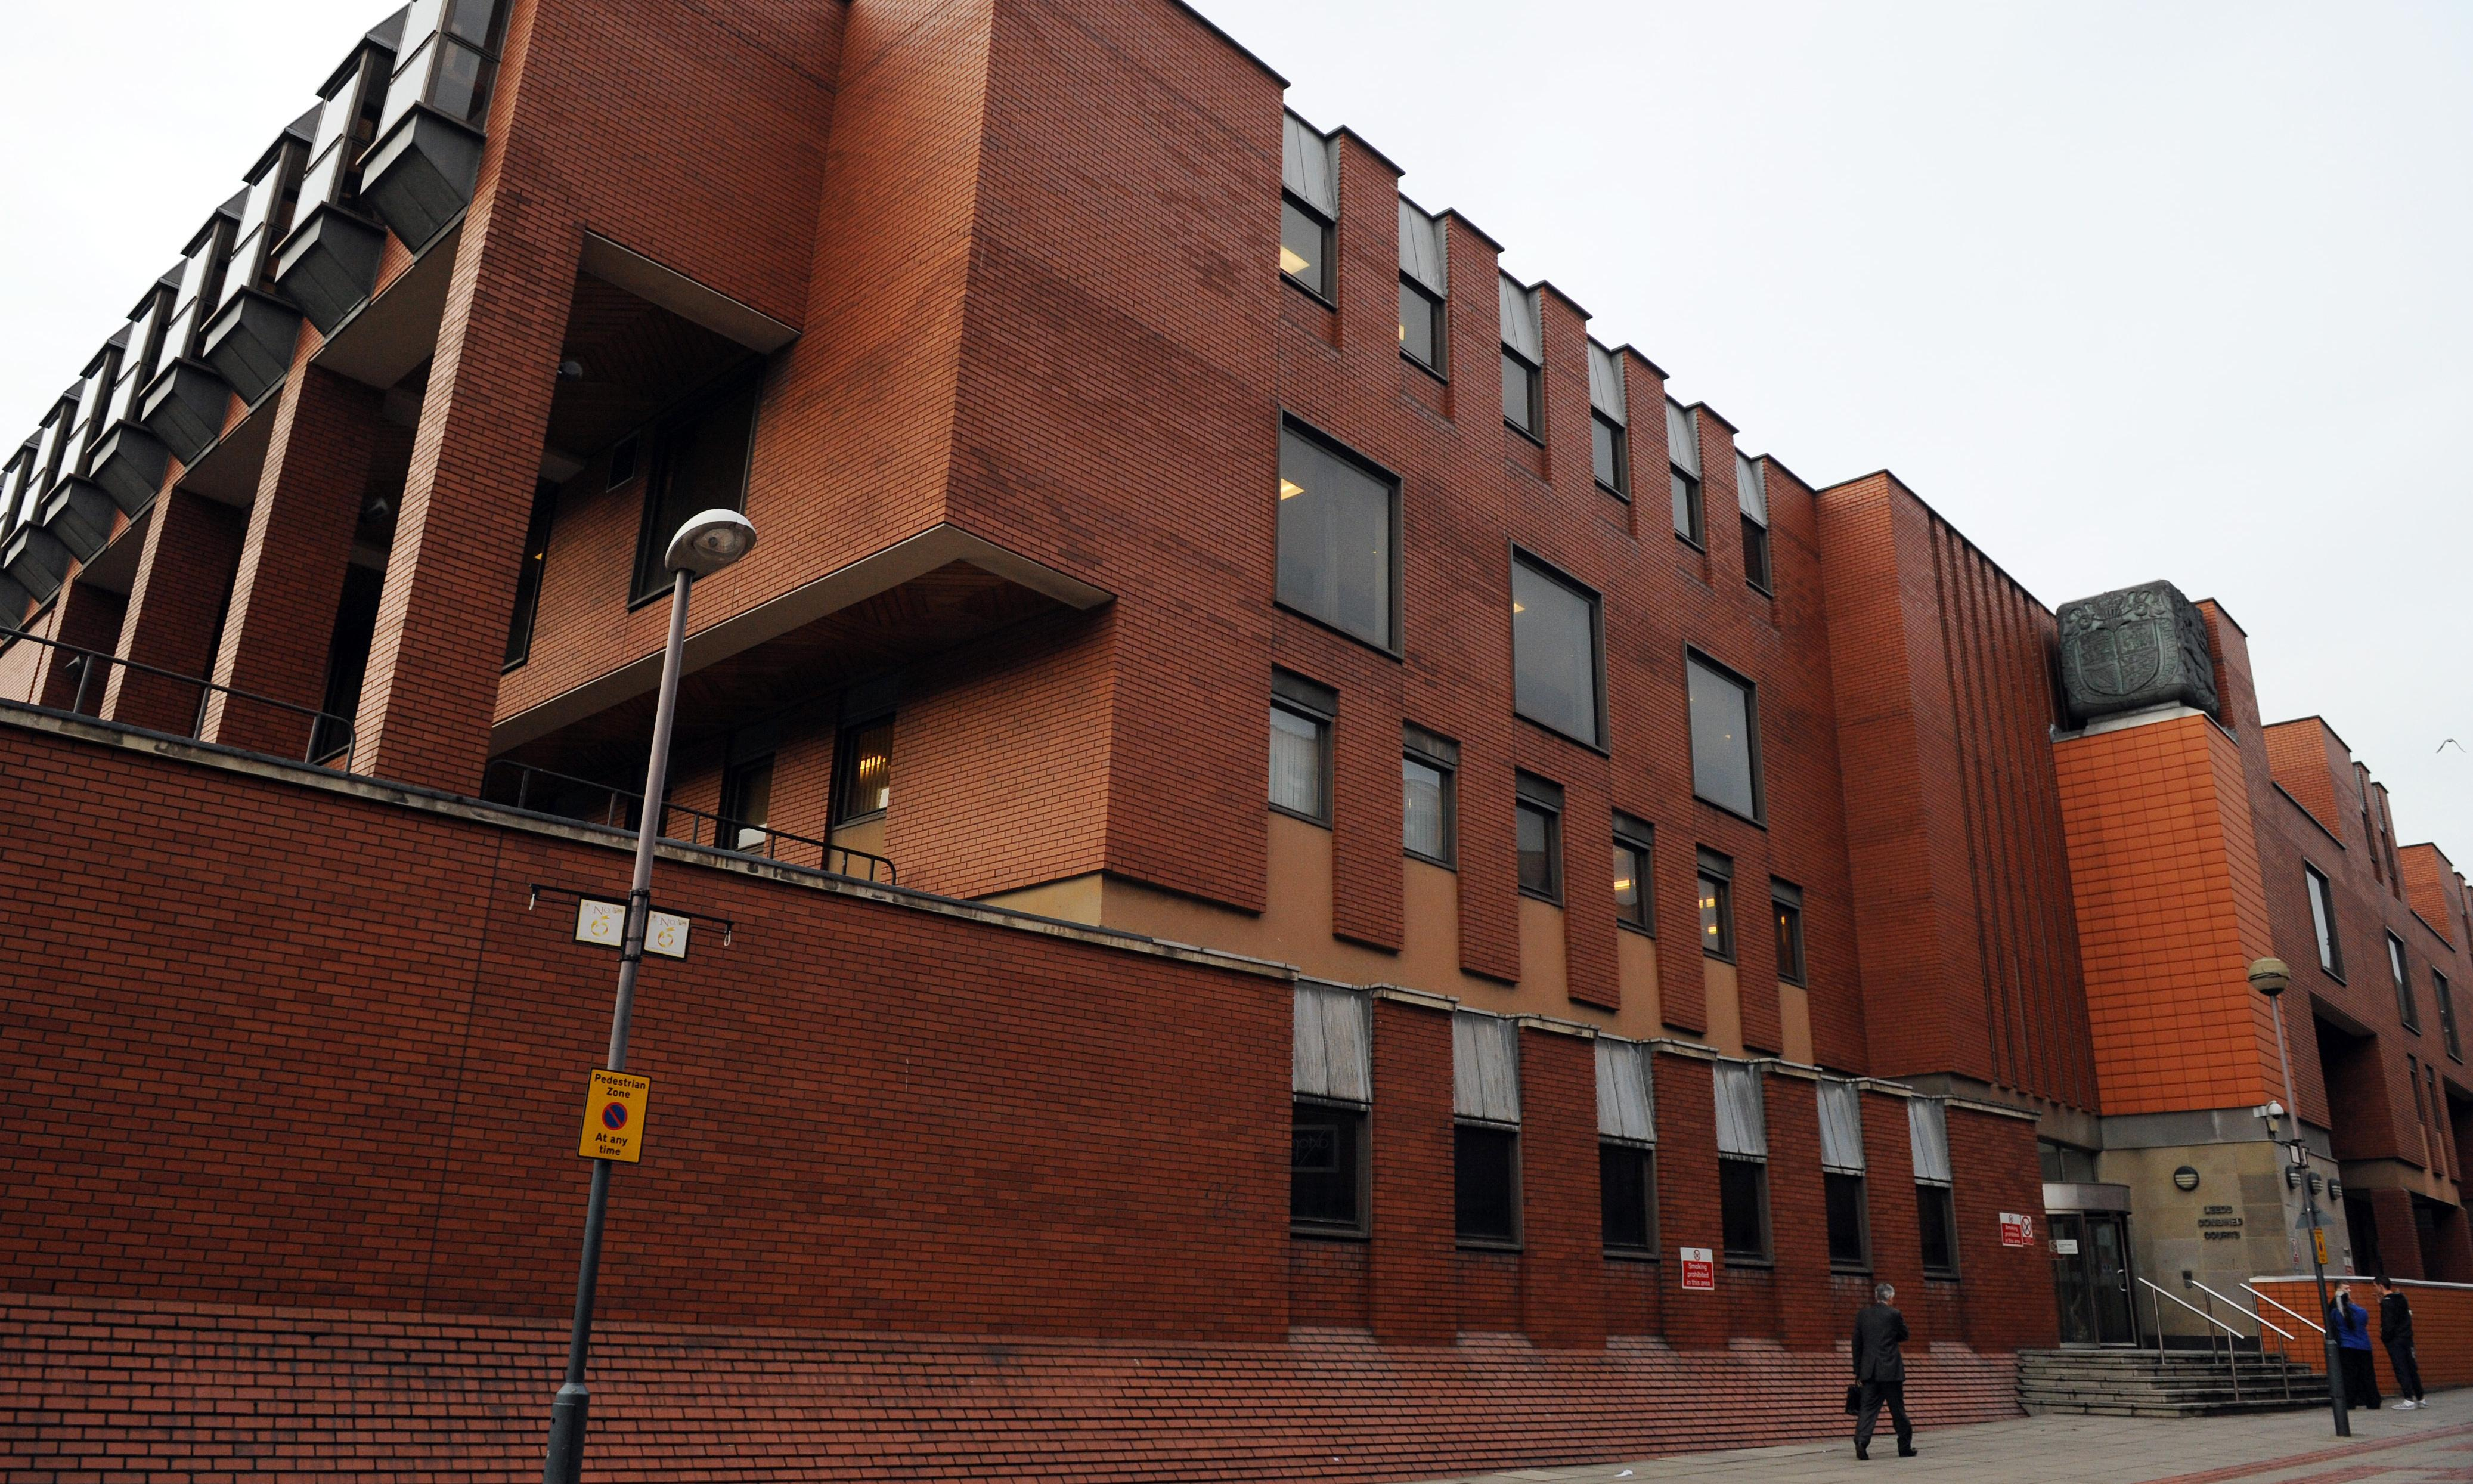 Paedophile-hunters 'overstepped the mark', court told